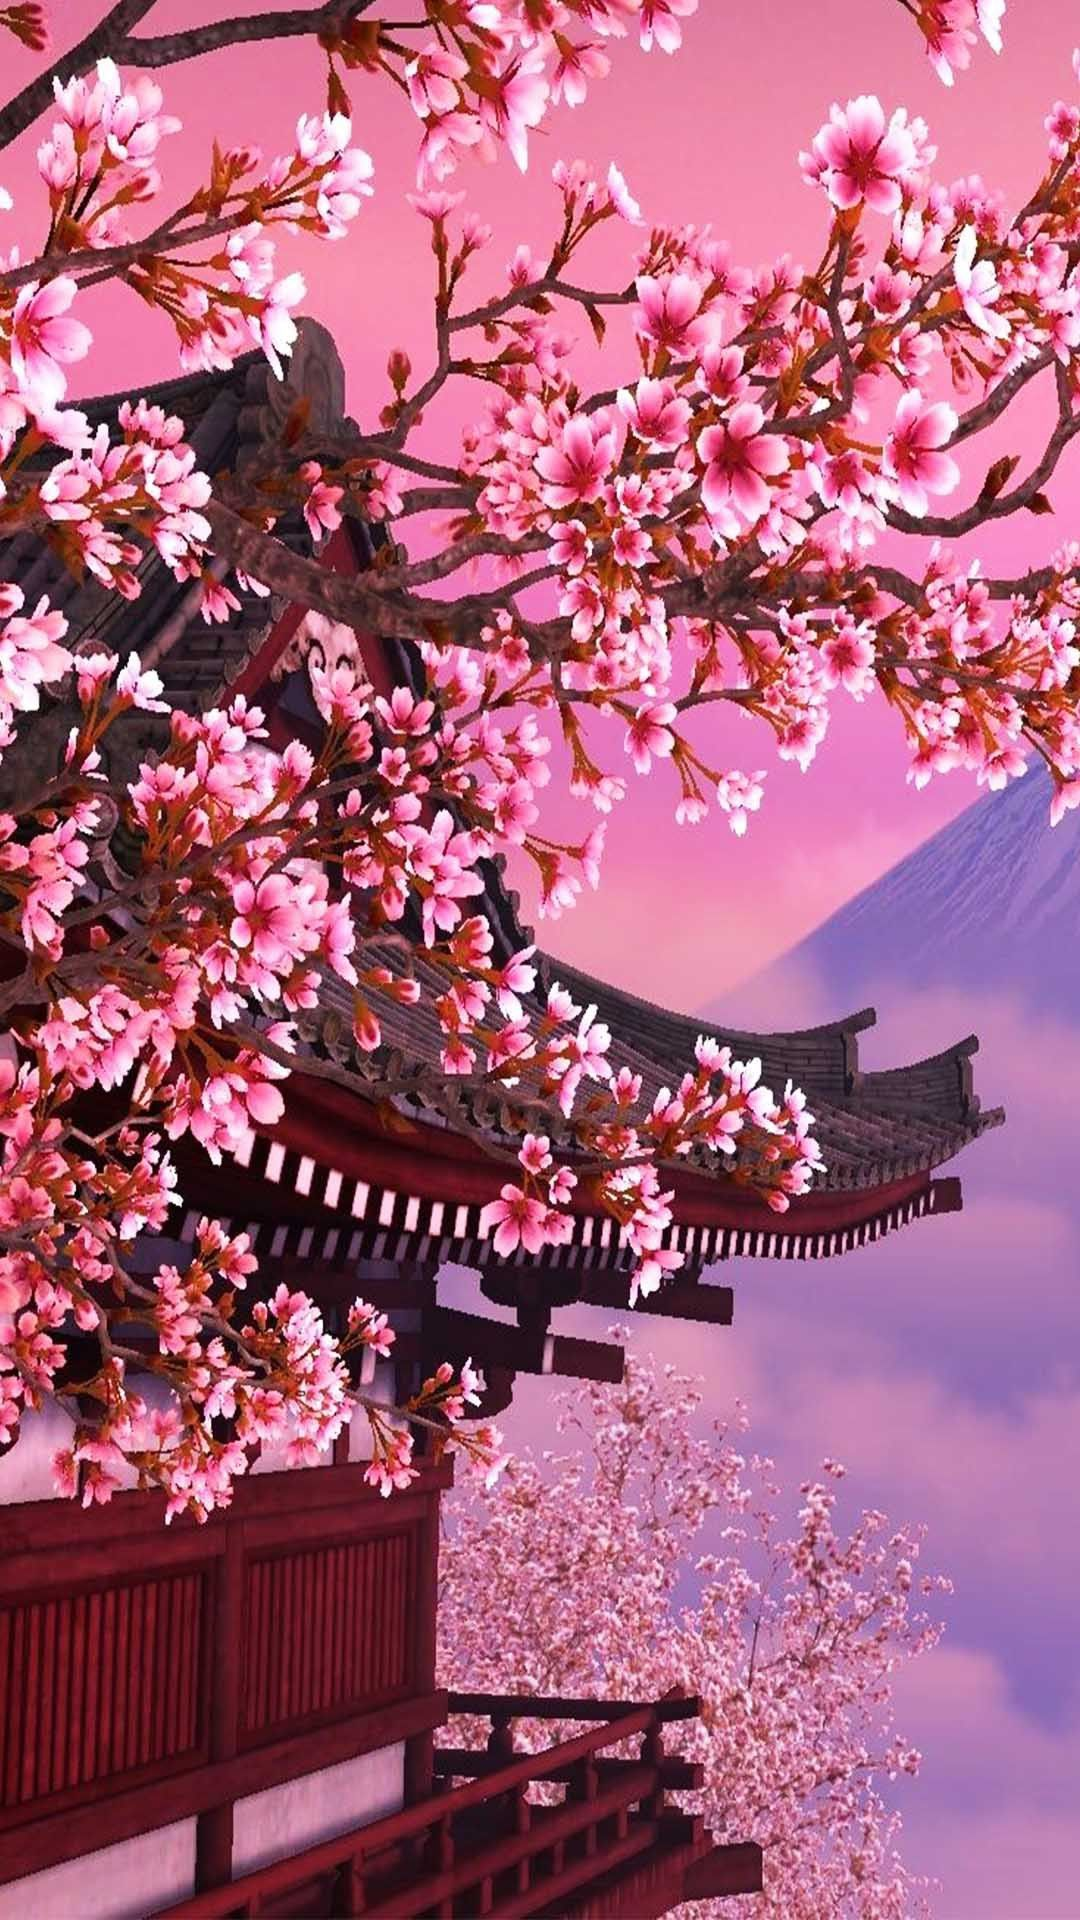 21 Wonderful Japanese Architecture Wallpapers For Android And Iphone Background Free Downlo Asian Wallpaper Japanese Background Cherry Blossom Wallpaper Iphone